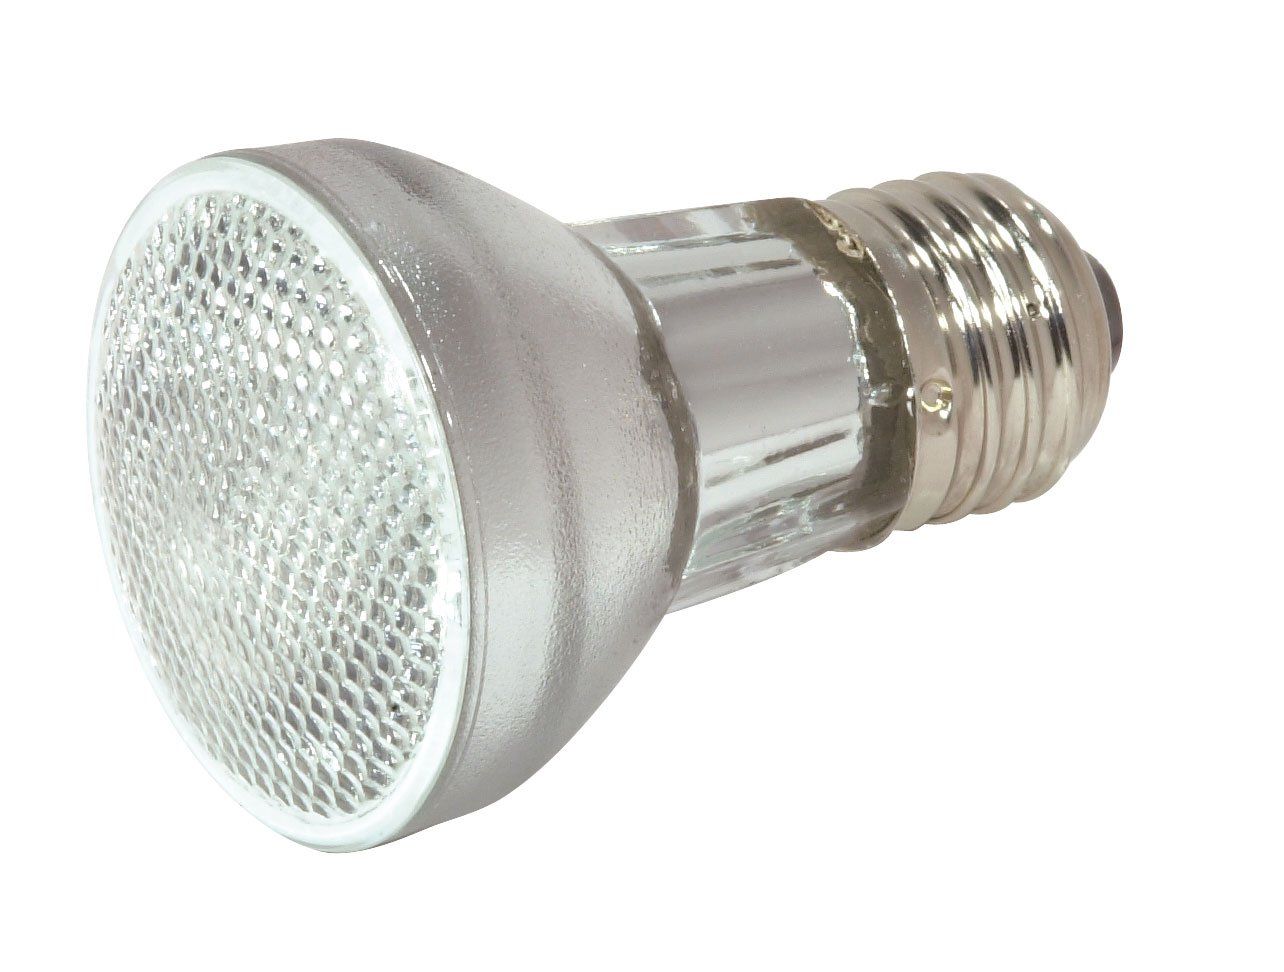 Satco S2303 75 Watt 800 Lumens PAR16 Halogen Narrow Flood 30 Degrees 130 Volt Clear Light Bulb Dimmable